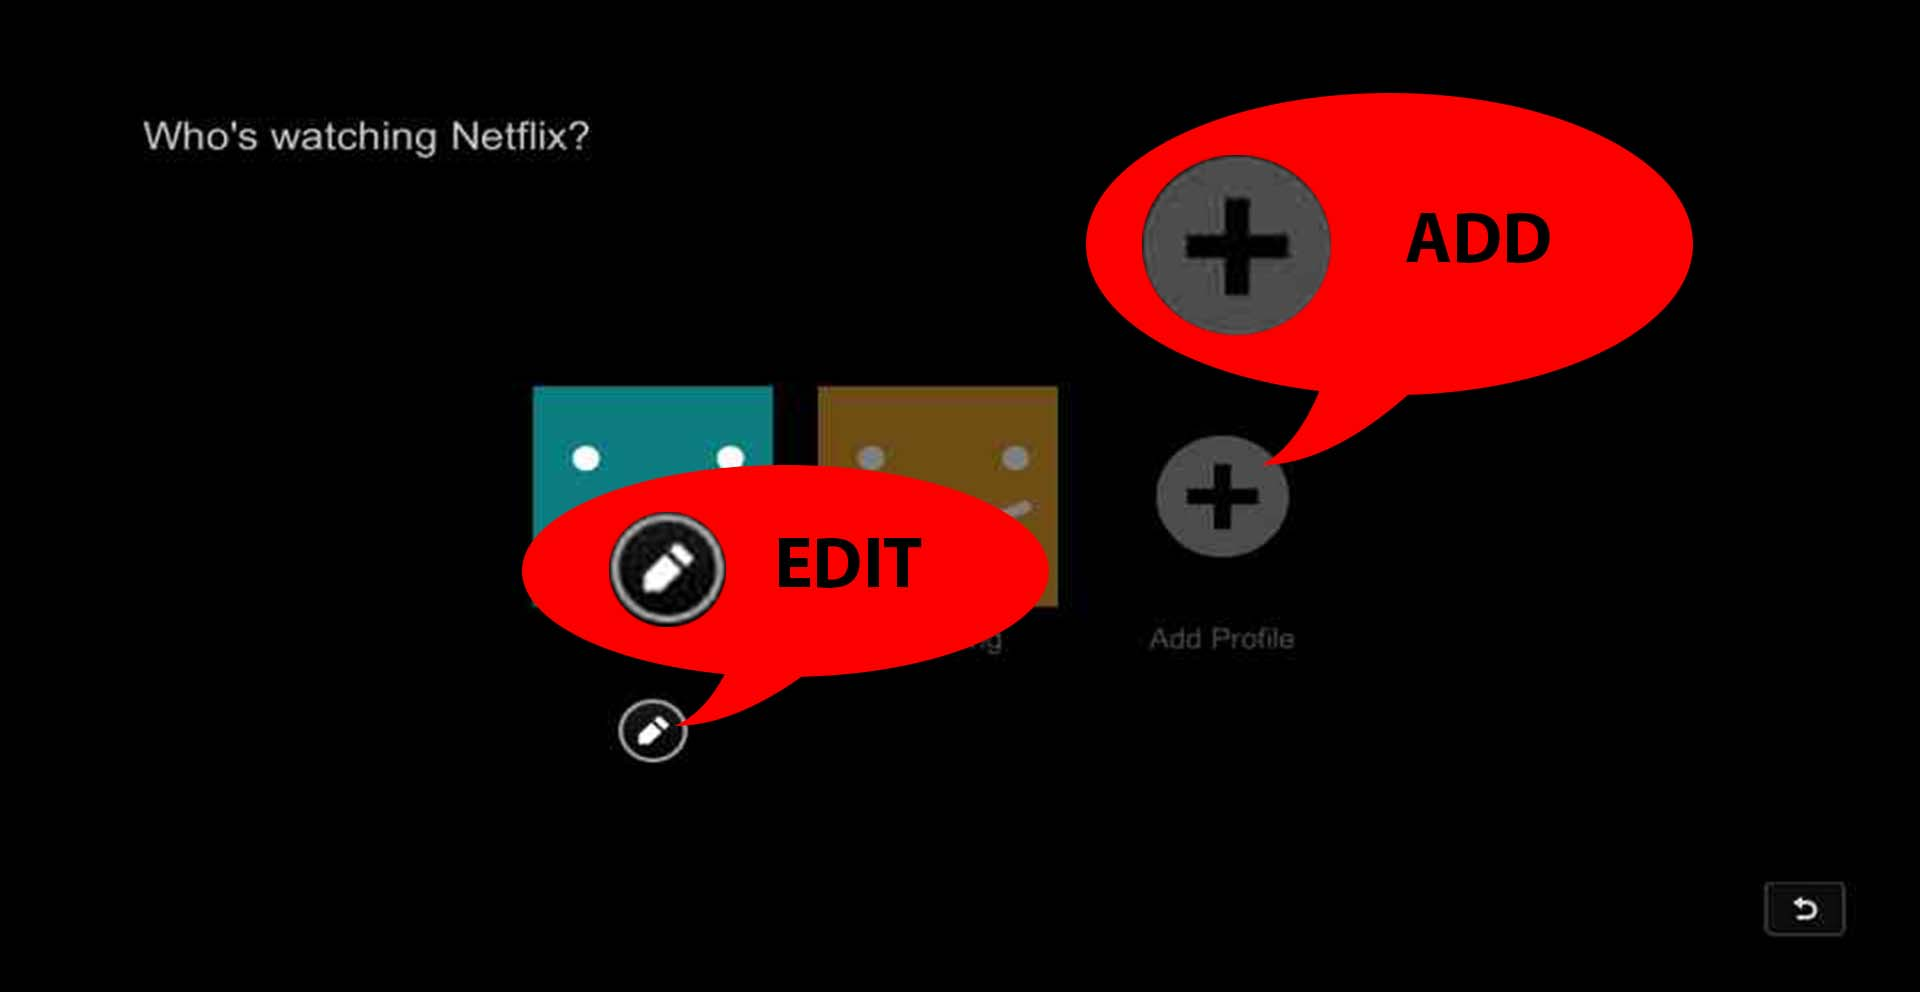 Netflix® Troubleshooting - Blu-ray | LG USA Support